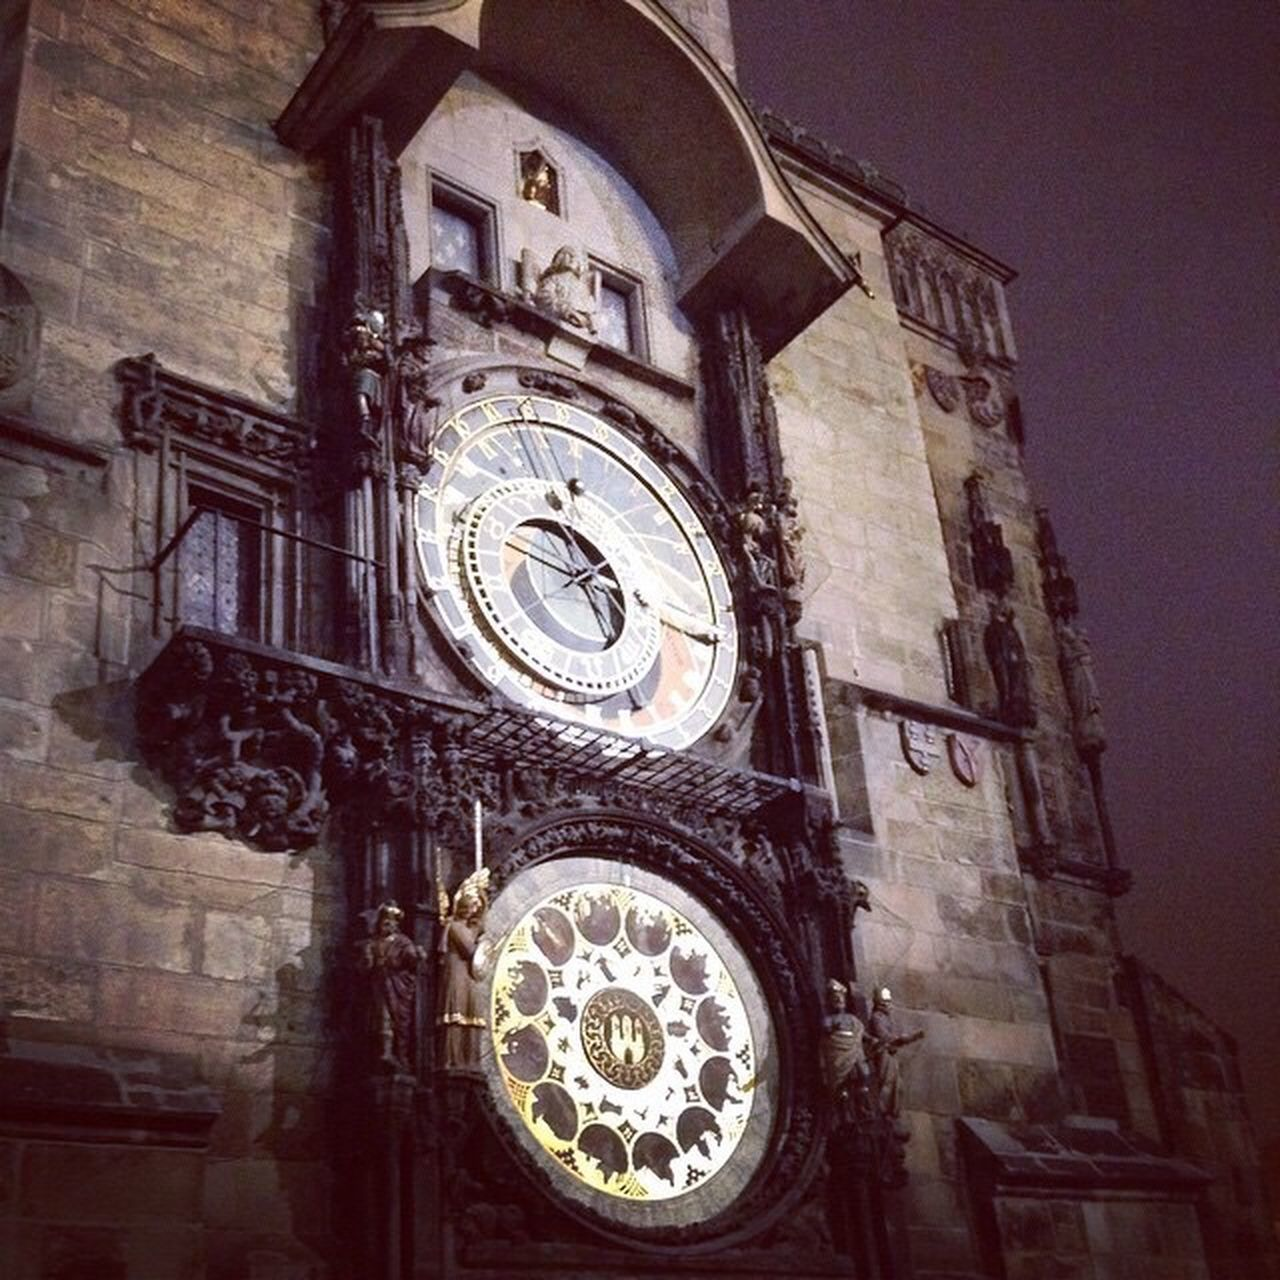 religion, place of worship, spirituality, building exterior, architecture, low angle view, travel destinations, clock, built structure, history, rose window, clock tower, ornate, astronomical clock, day, no people, outdoors, statue, bell tower, time, sculpture, roman numeral, sky, clock face